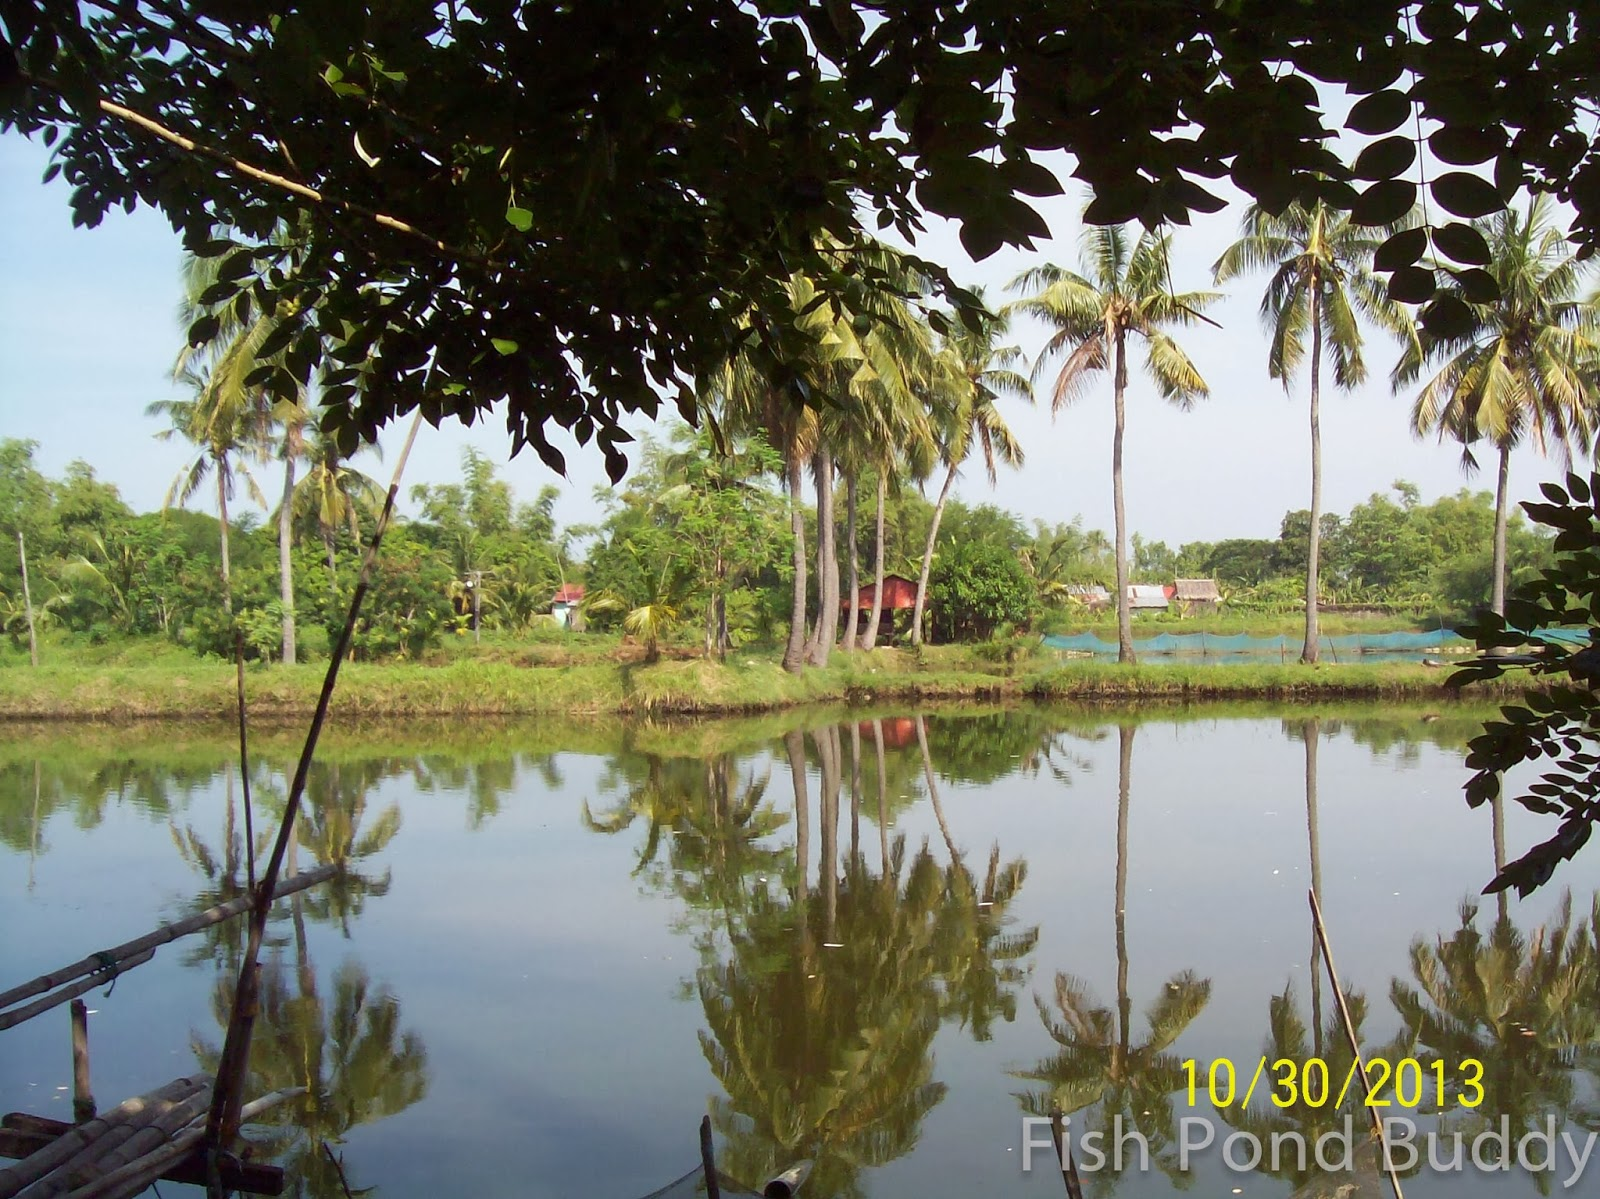 Fish Pond Buddy Uses Of Coconut Trees In Our Bangus